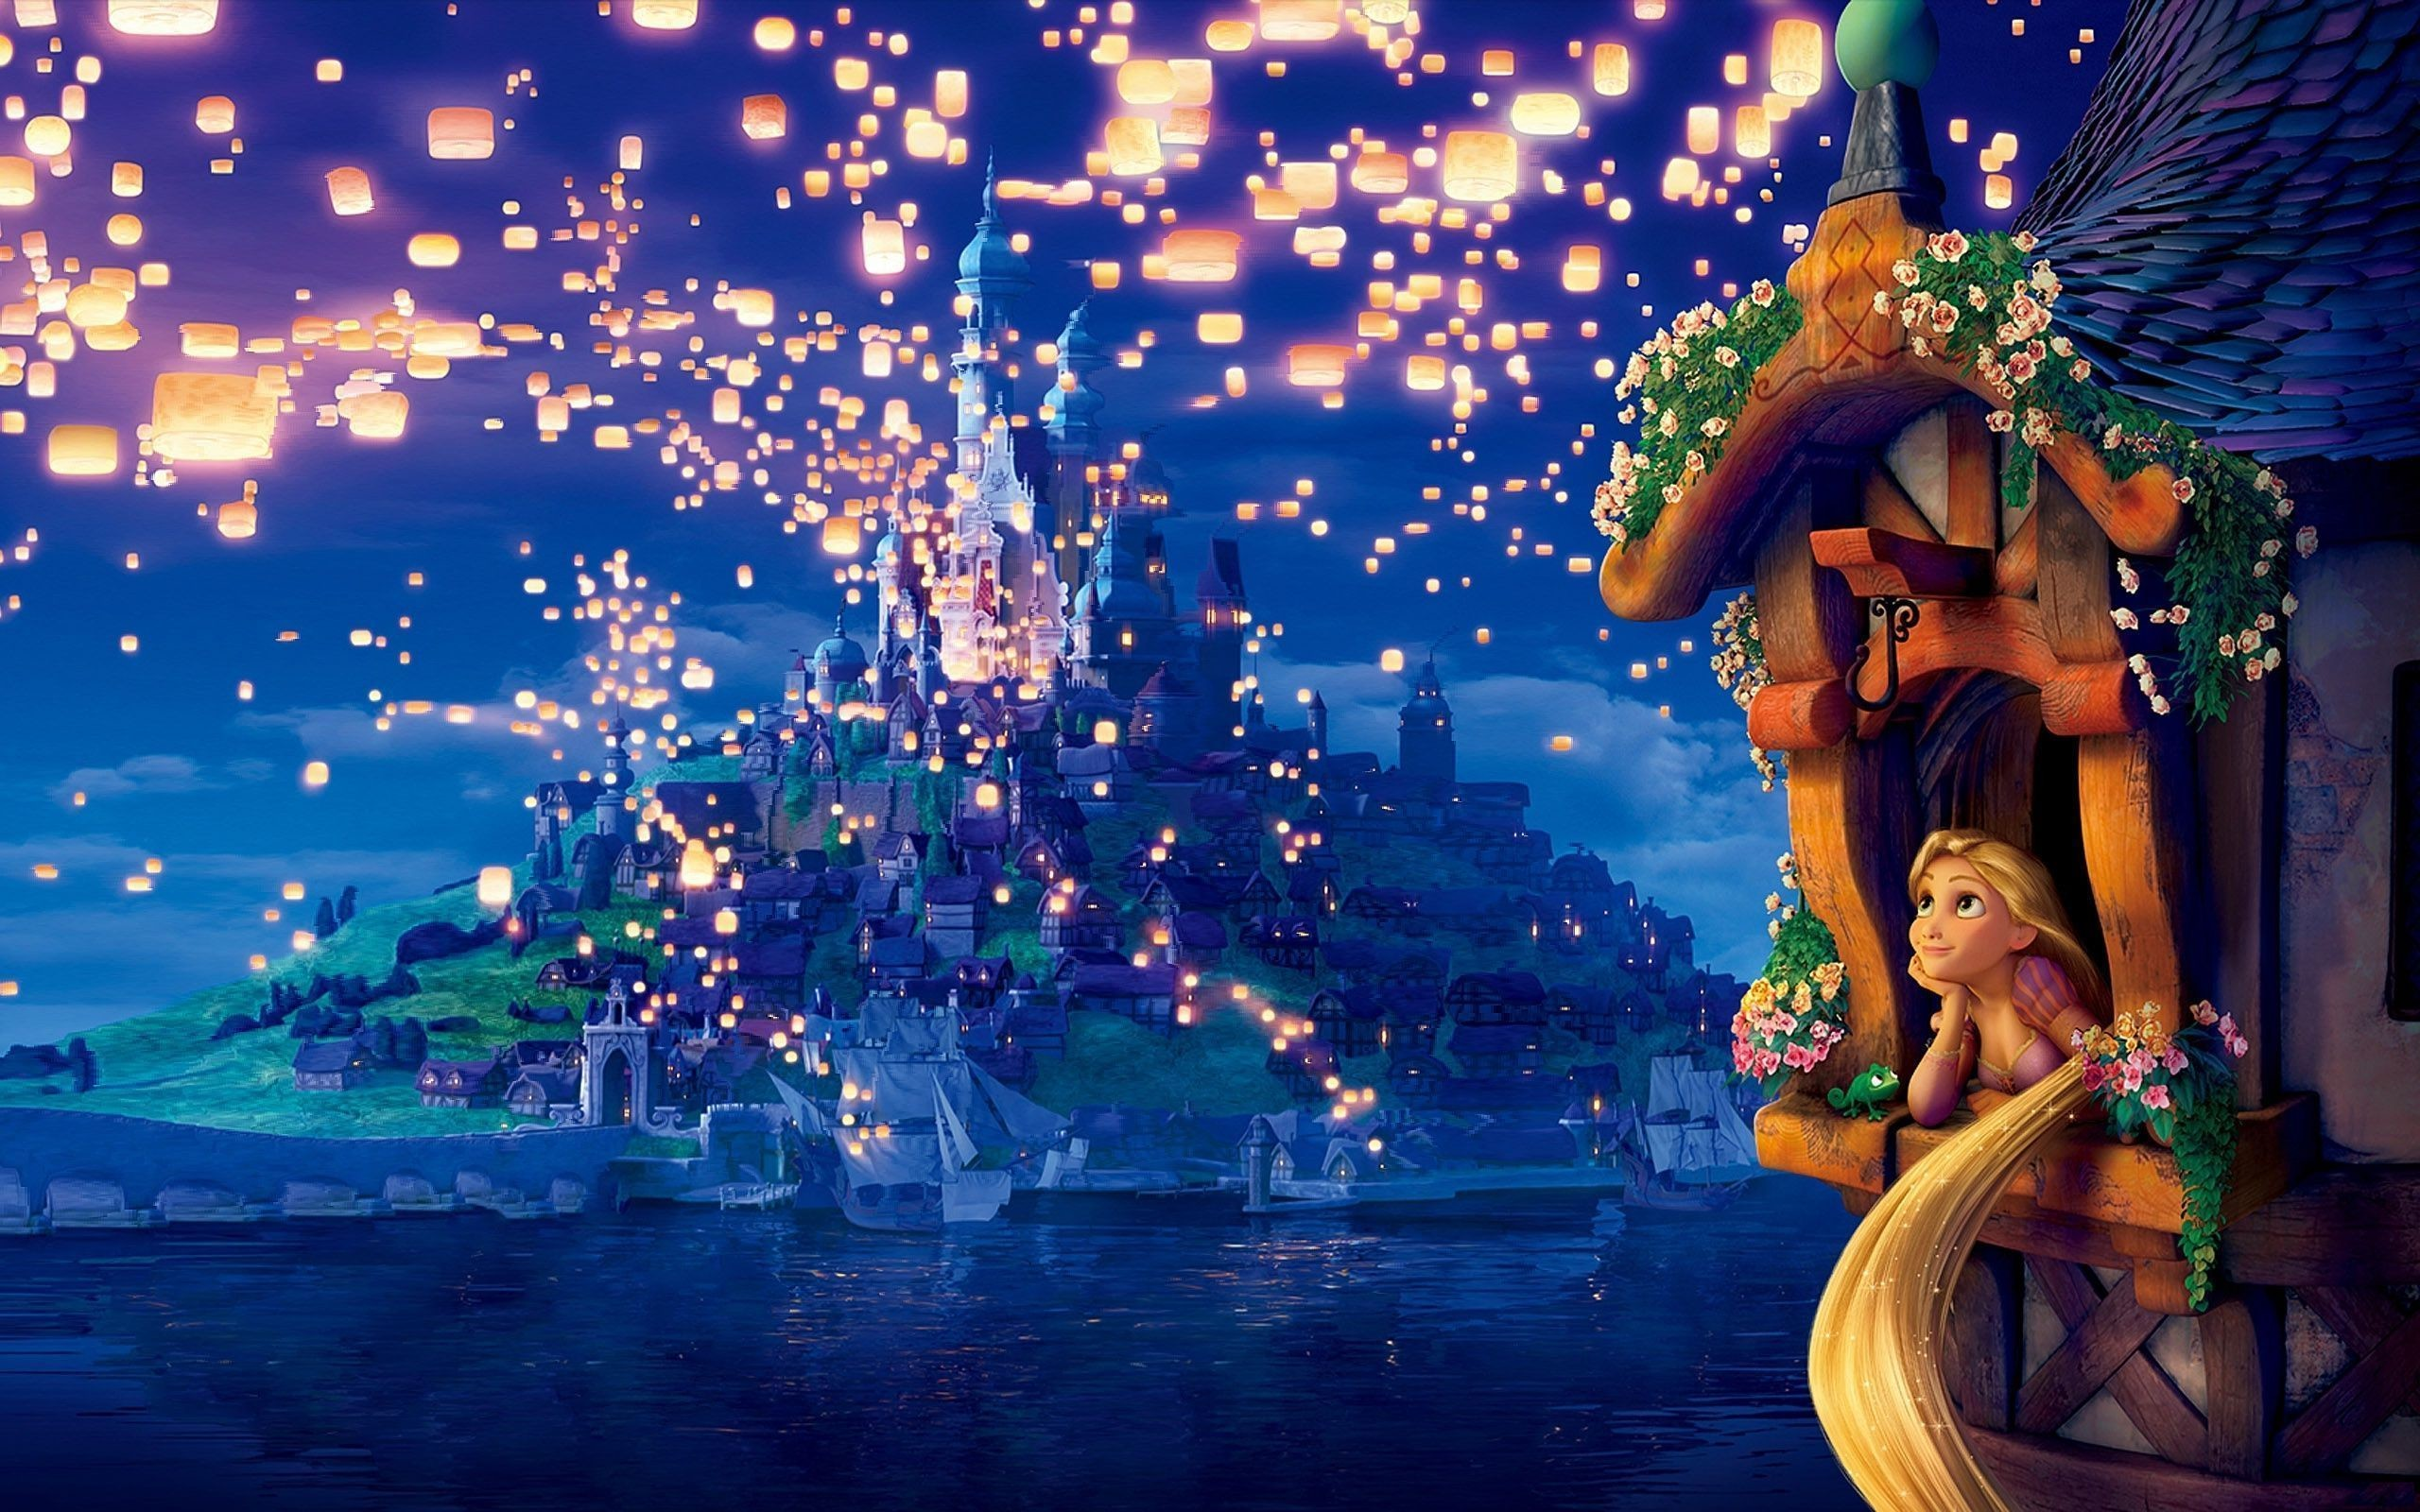 Tangled Wallpaper 72 Pictures